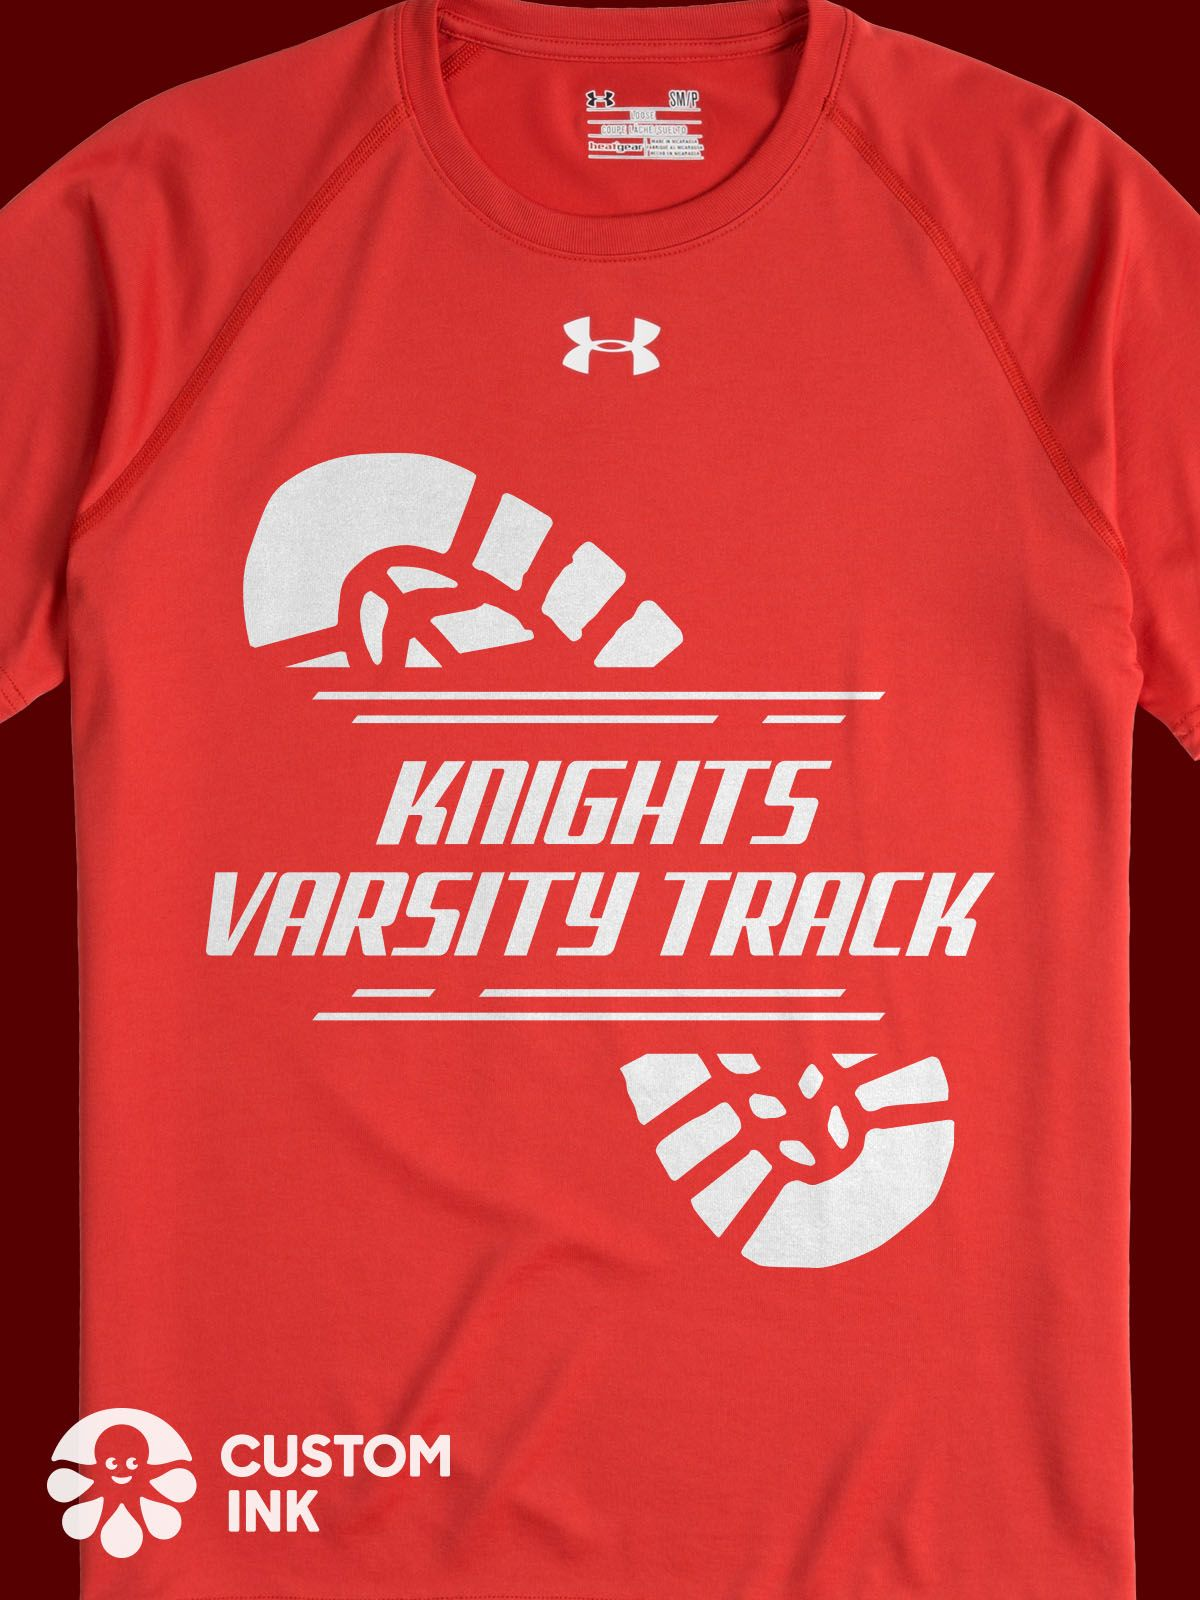 6c84bdd91 Varsity track custom shirt design idea for k12 high school. Perfect for  track and field, competition, track meet, moms and supporters, and more